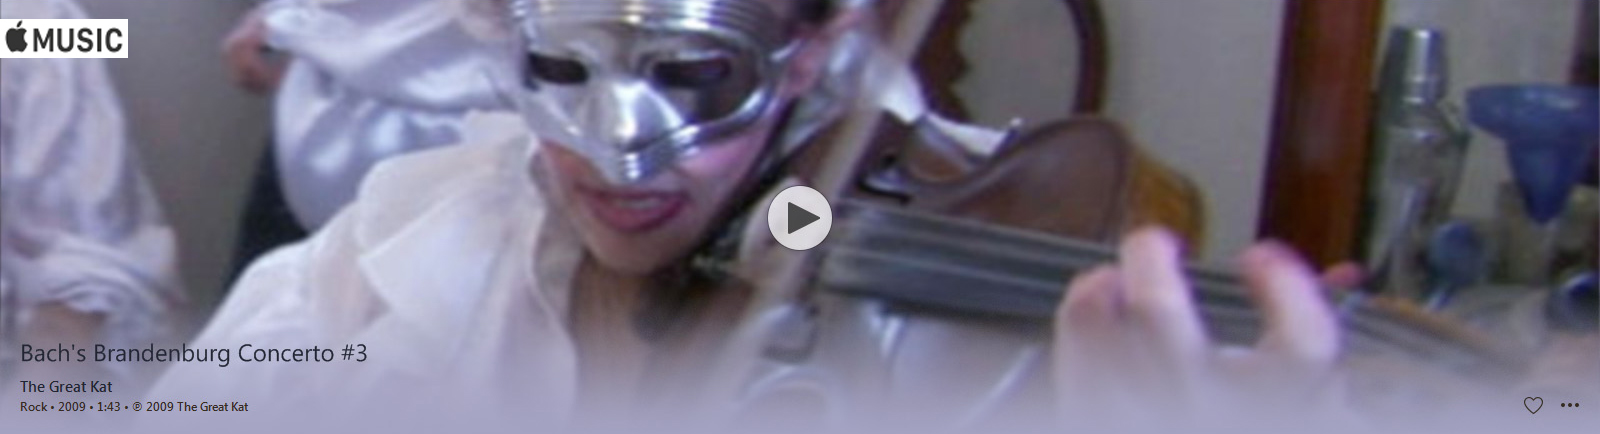 "APPLE MUSIC is NOW STREAMING The Great Kat's BACH'S ""BRANDENBURG CONCERTO #3"" MUSIC VIDEO!"